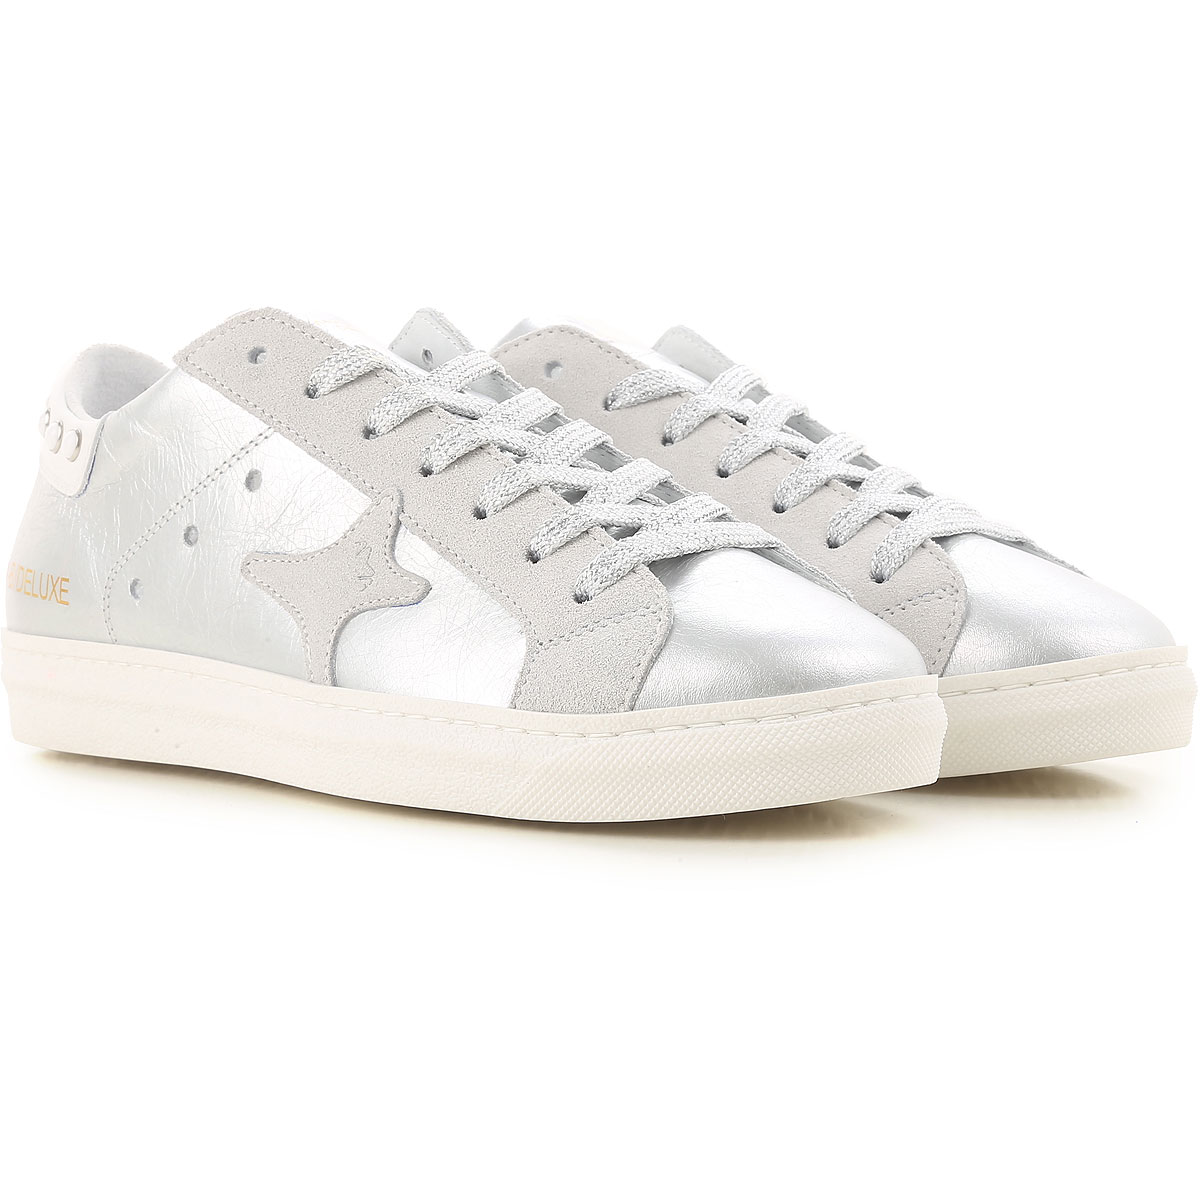 Image of Ama Brand Sneakers for Women On Sale, Silver, Leather, 2017, EUR 36 - UK 3 - USA 5.5 EUR 37 - UK 4 - USA 6.5 EUR 38 - UK 5 - USA 7.5 EUR 40 - UK 7 - USA 9.5